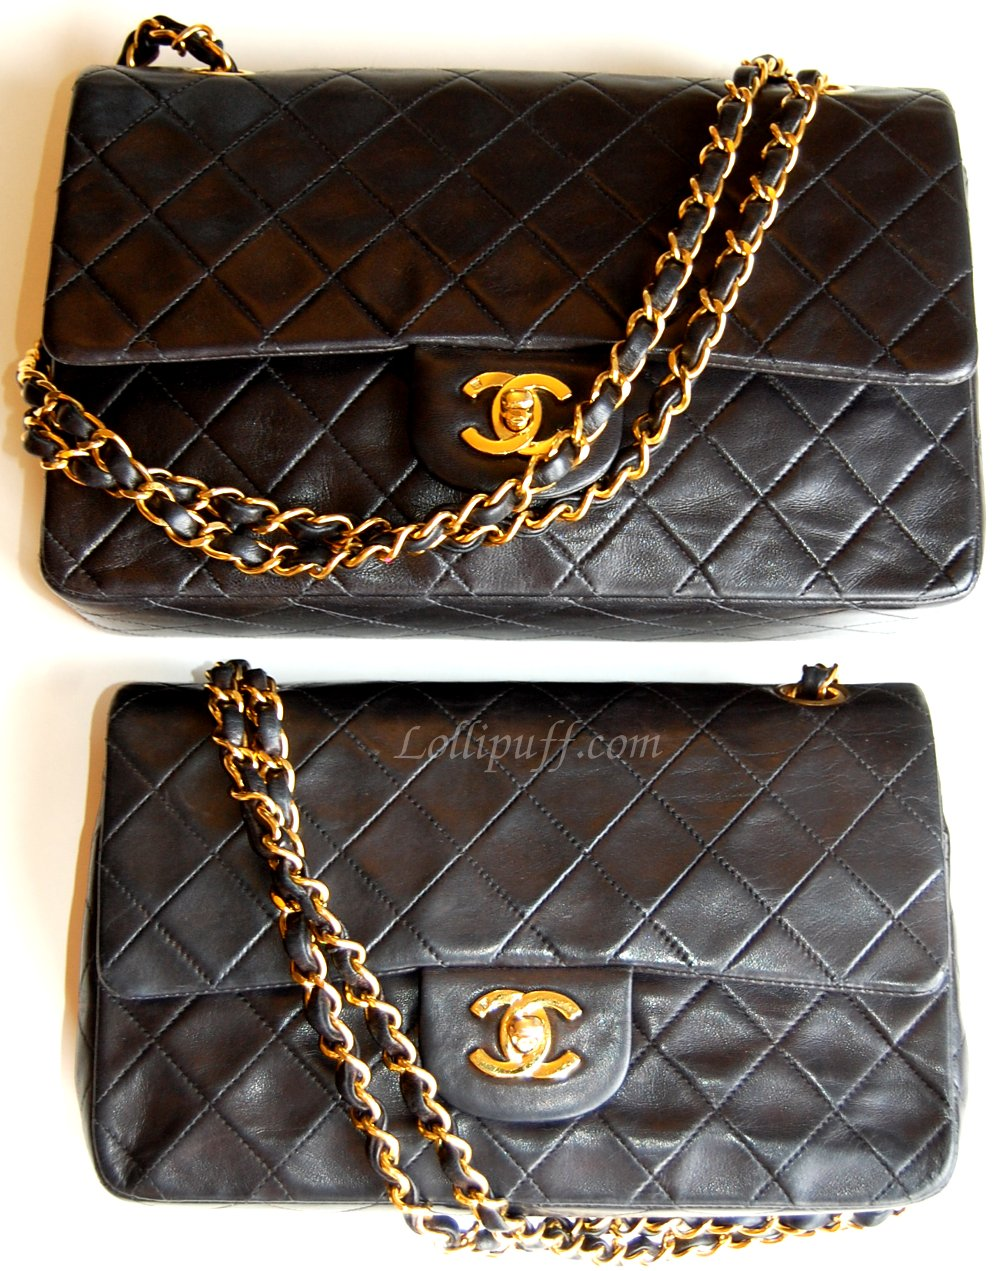 5cea9e5cc back of Chanel 2.55 double flap lambskin bags Chanel bag size comparison.  Obviously, by ...